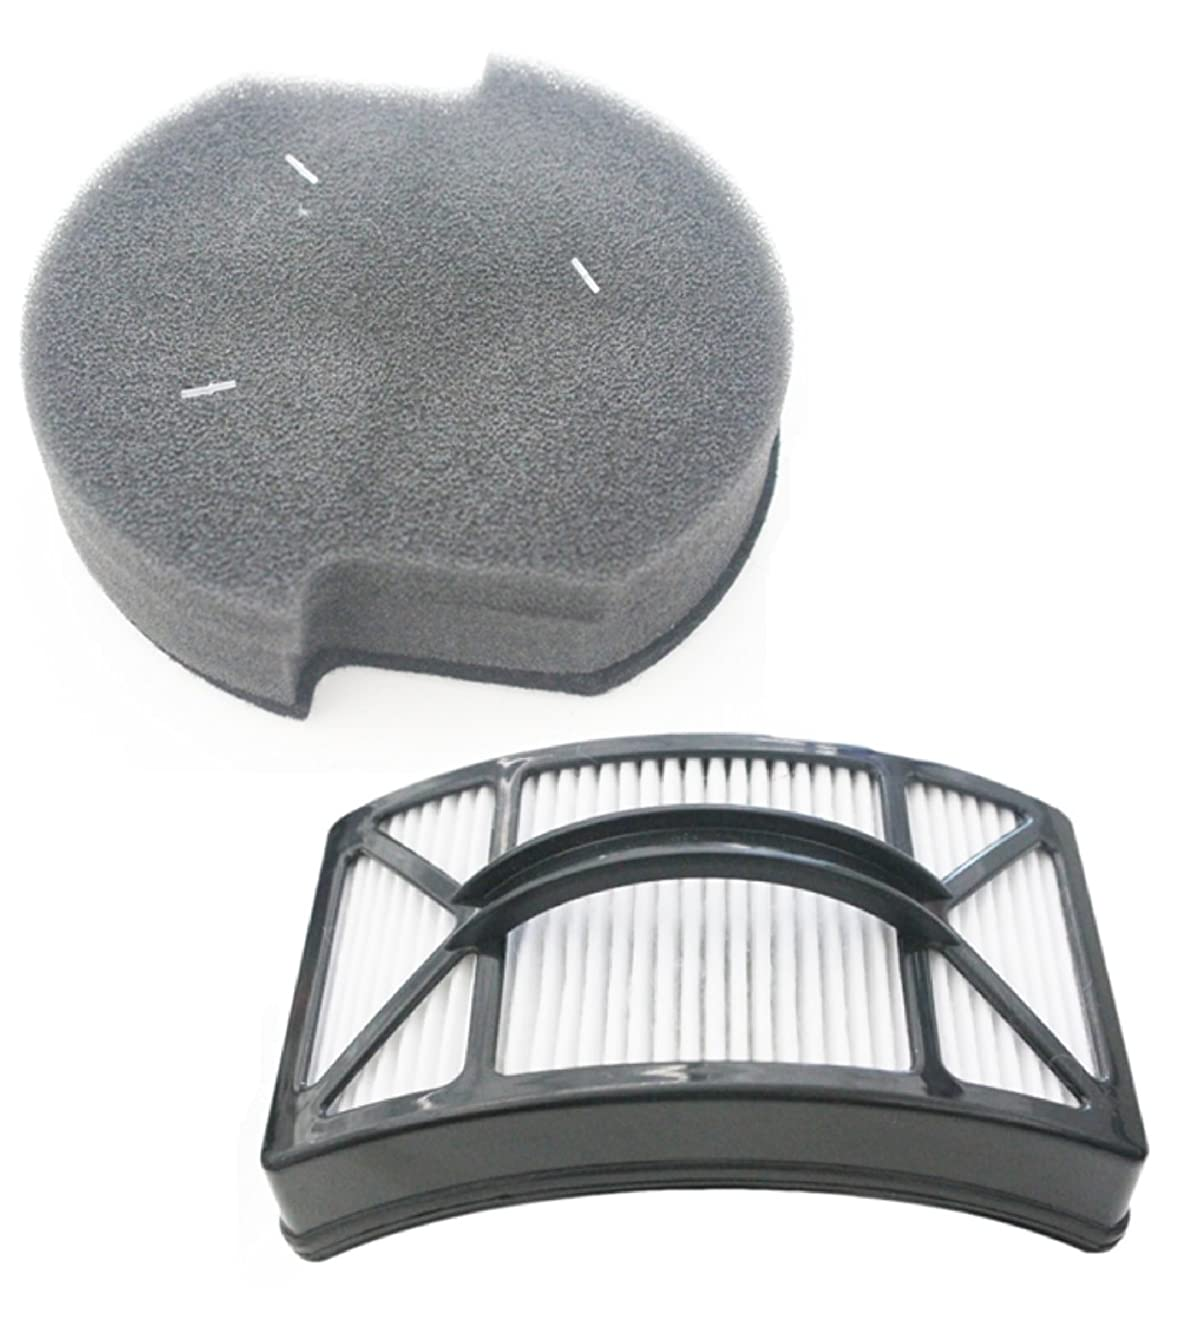 DVC Micro-Lined Bissell Powerlifter Pet Filter Kit. Includes Washable Foam Filter 1604127 Washable HEPA Filter 1604130.